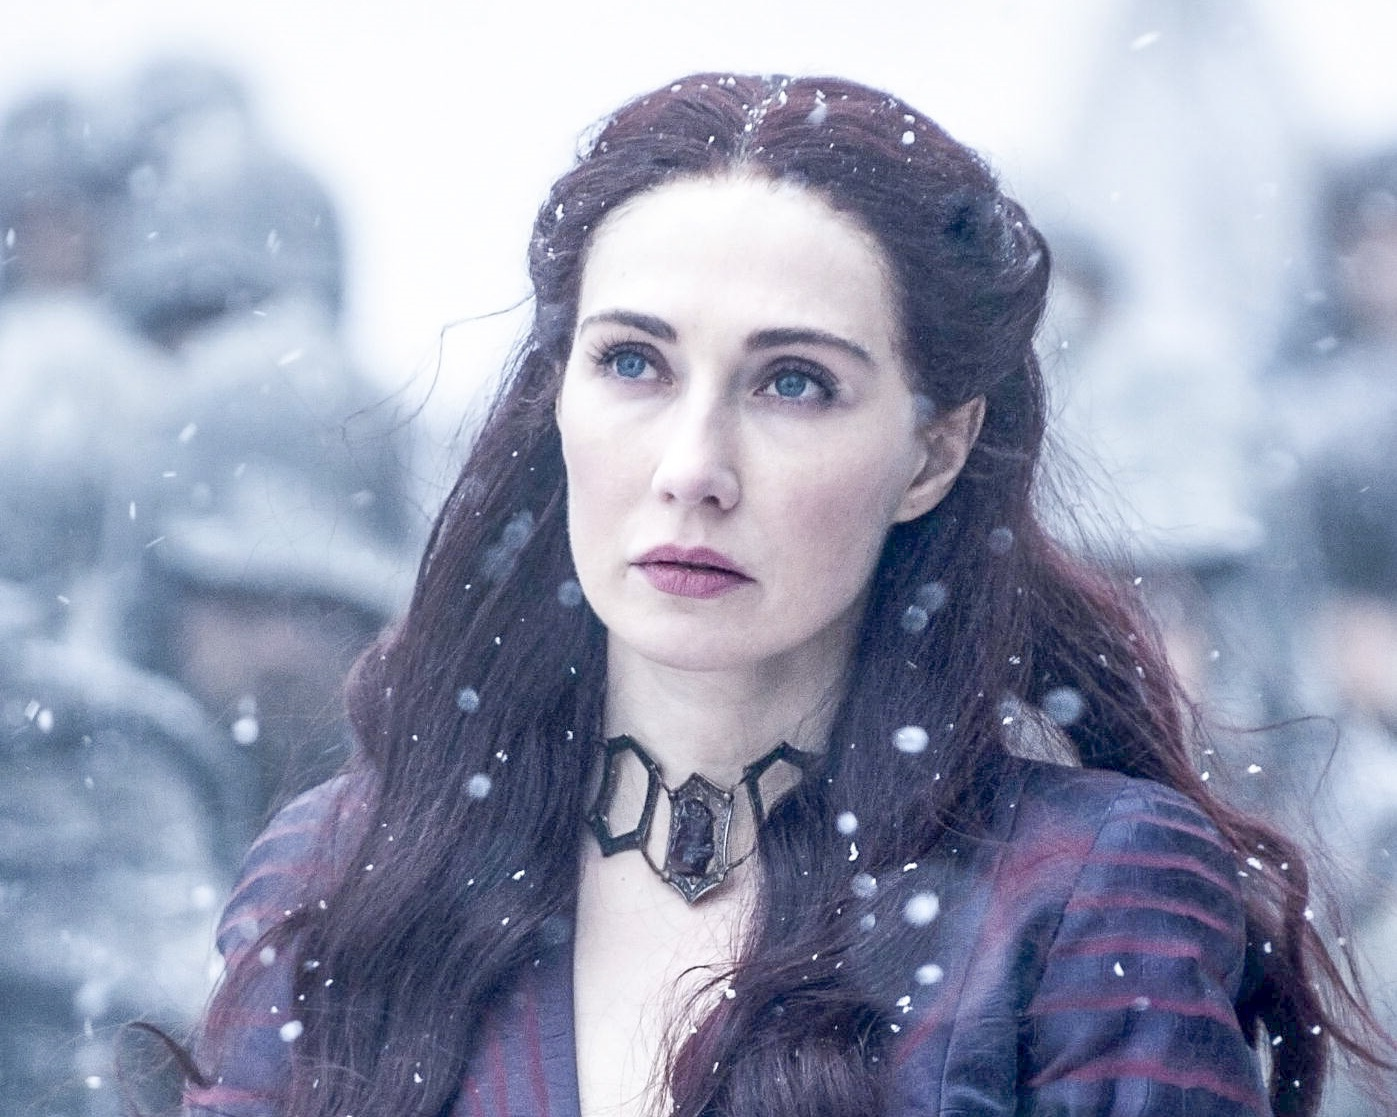 Lady Melisandre - Lady Melisandre Pro-Tip: Accessories and make up may hide your true age, but at the end of the night, when you take all that stuff off, are you happy with who you are? Do you know what your best non-material assets are? If not, figure it out and play those to your benefit.